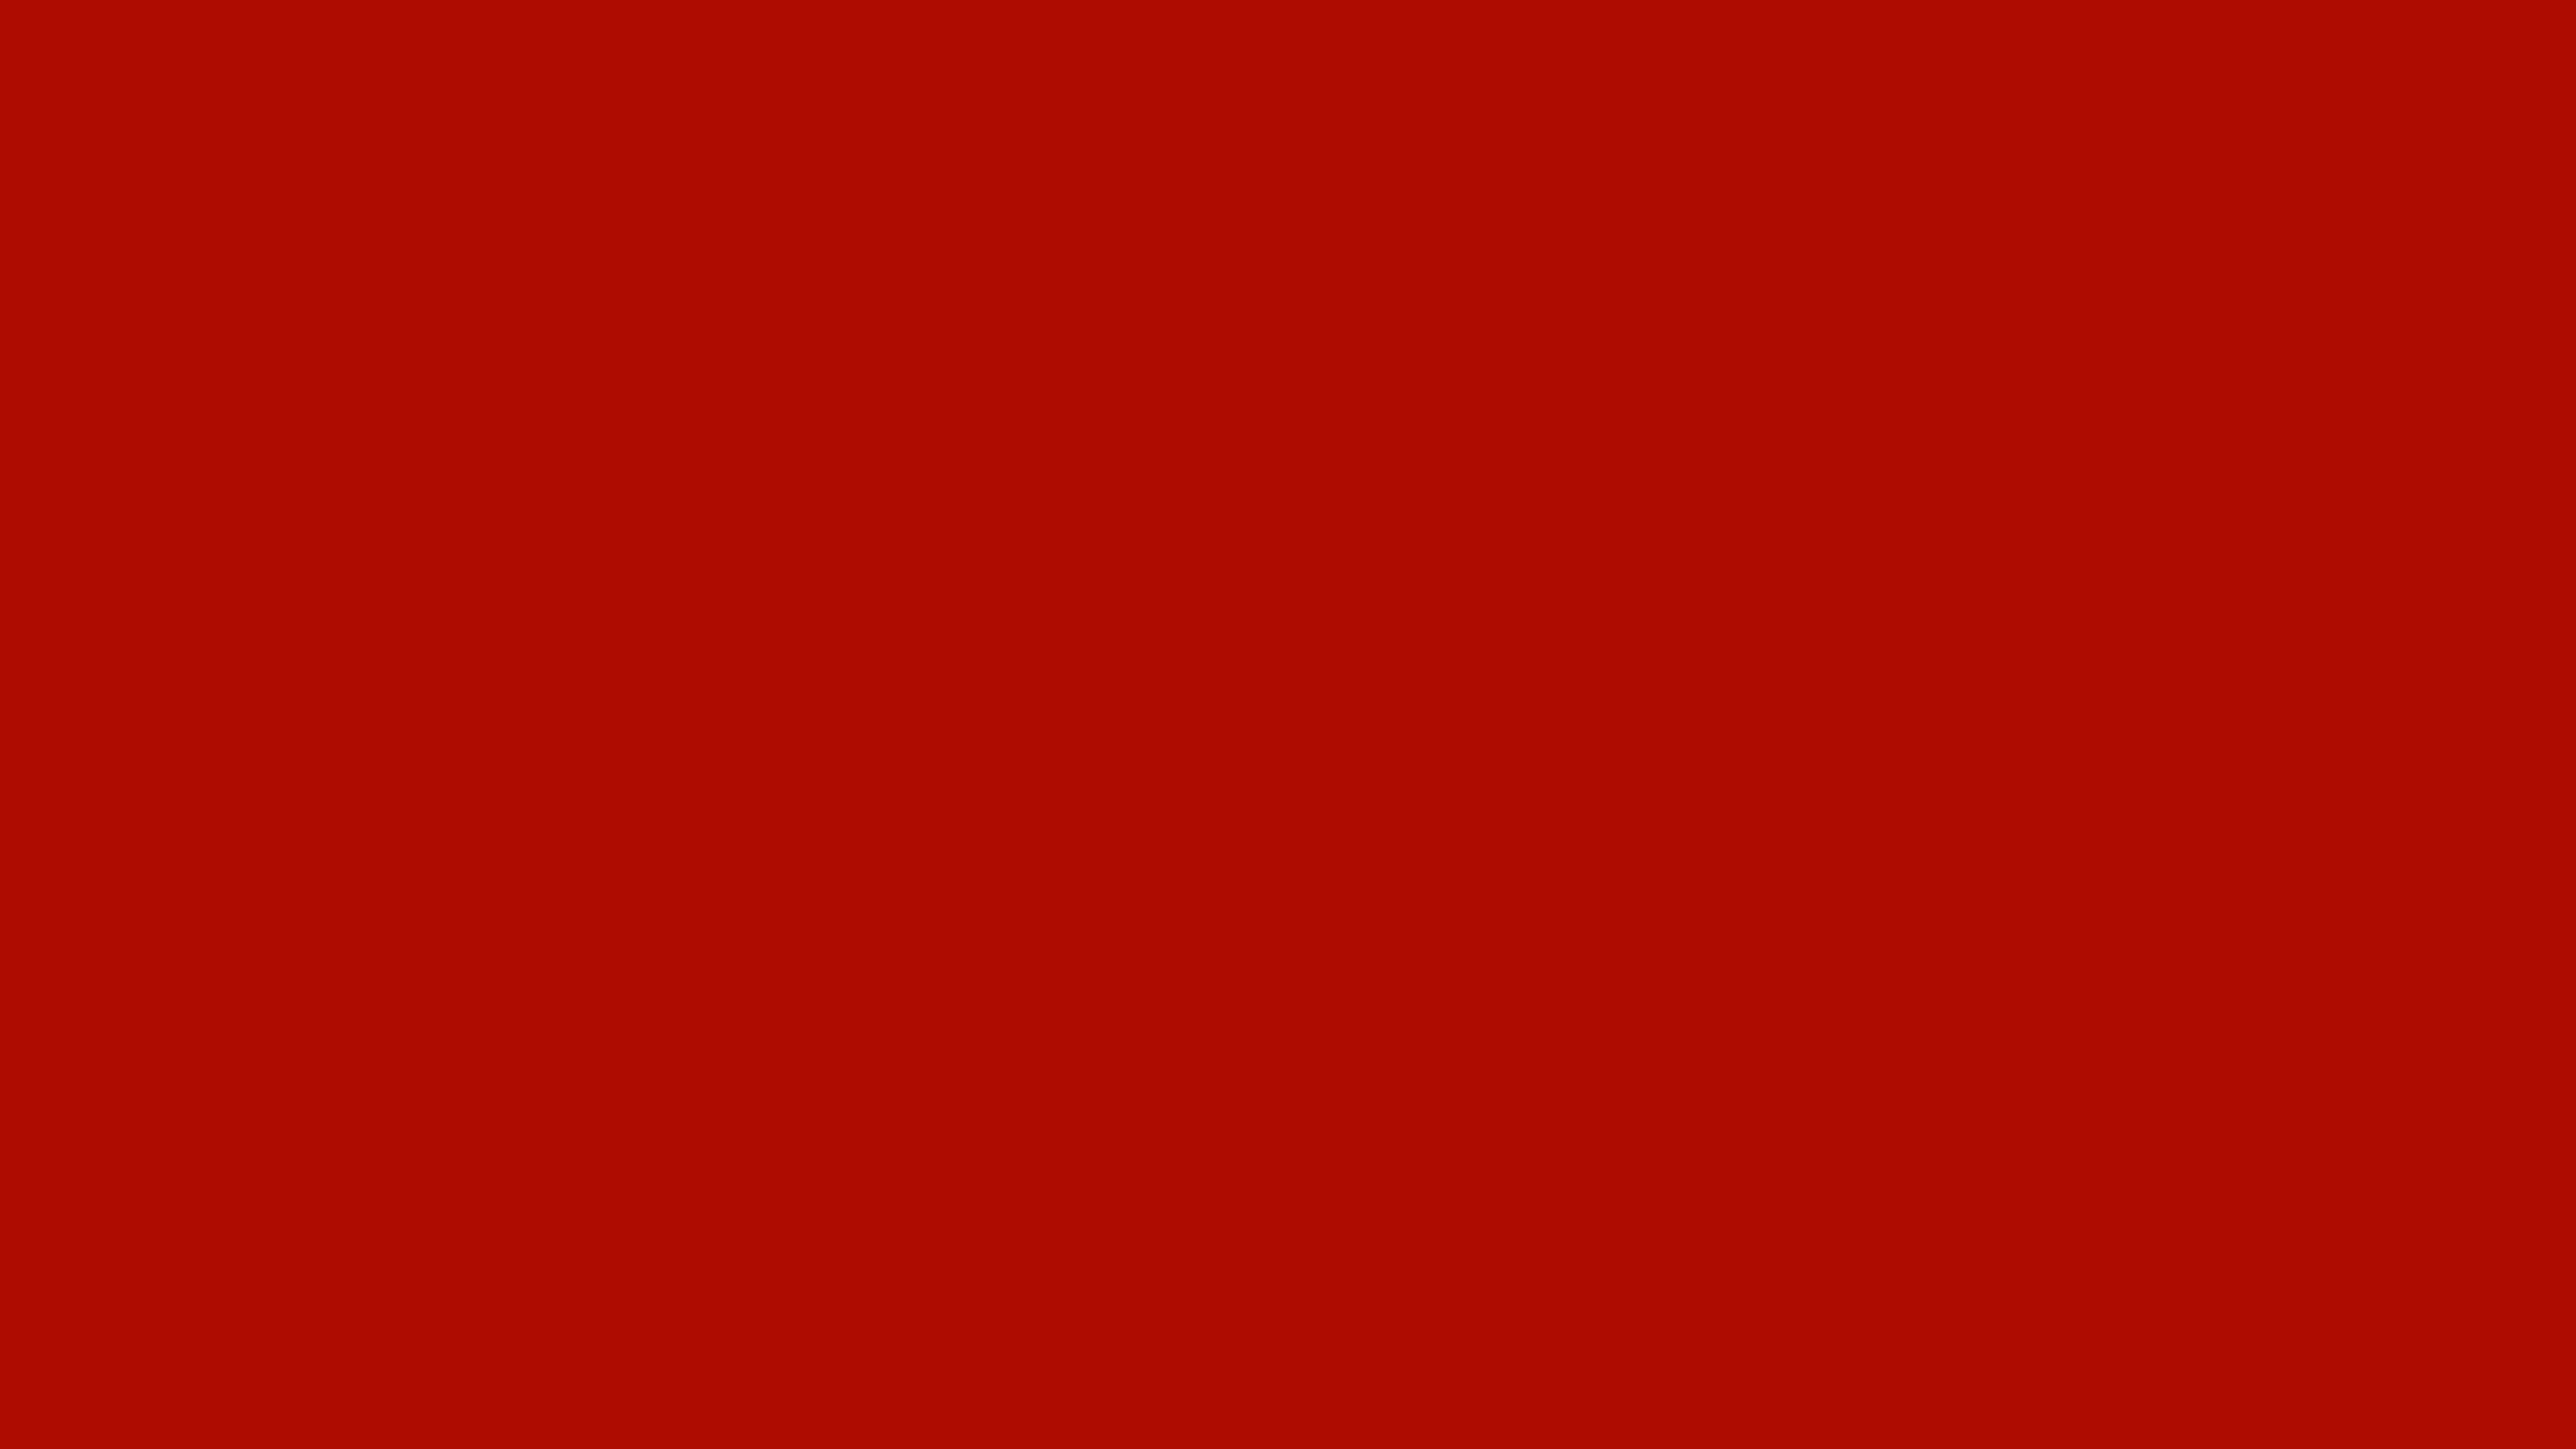 7680x4320 Mordant Red 19 Solid Color Background